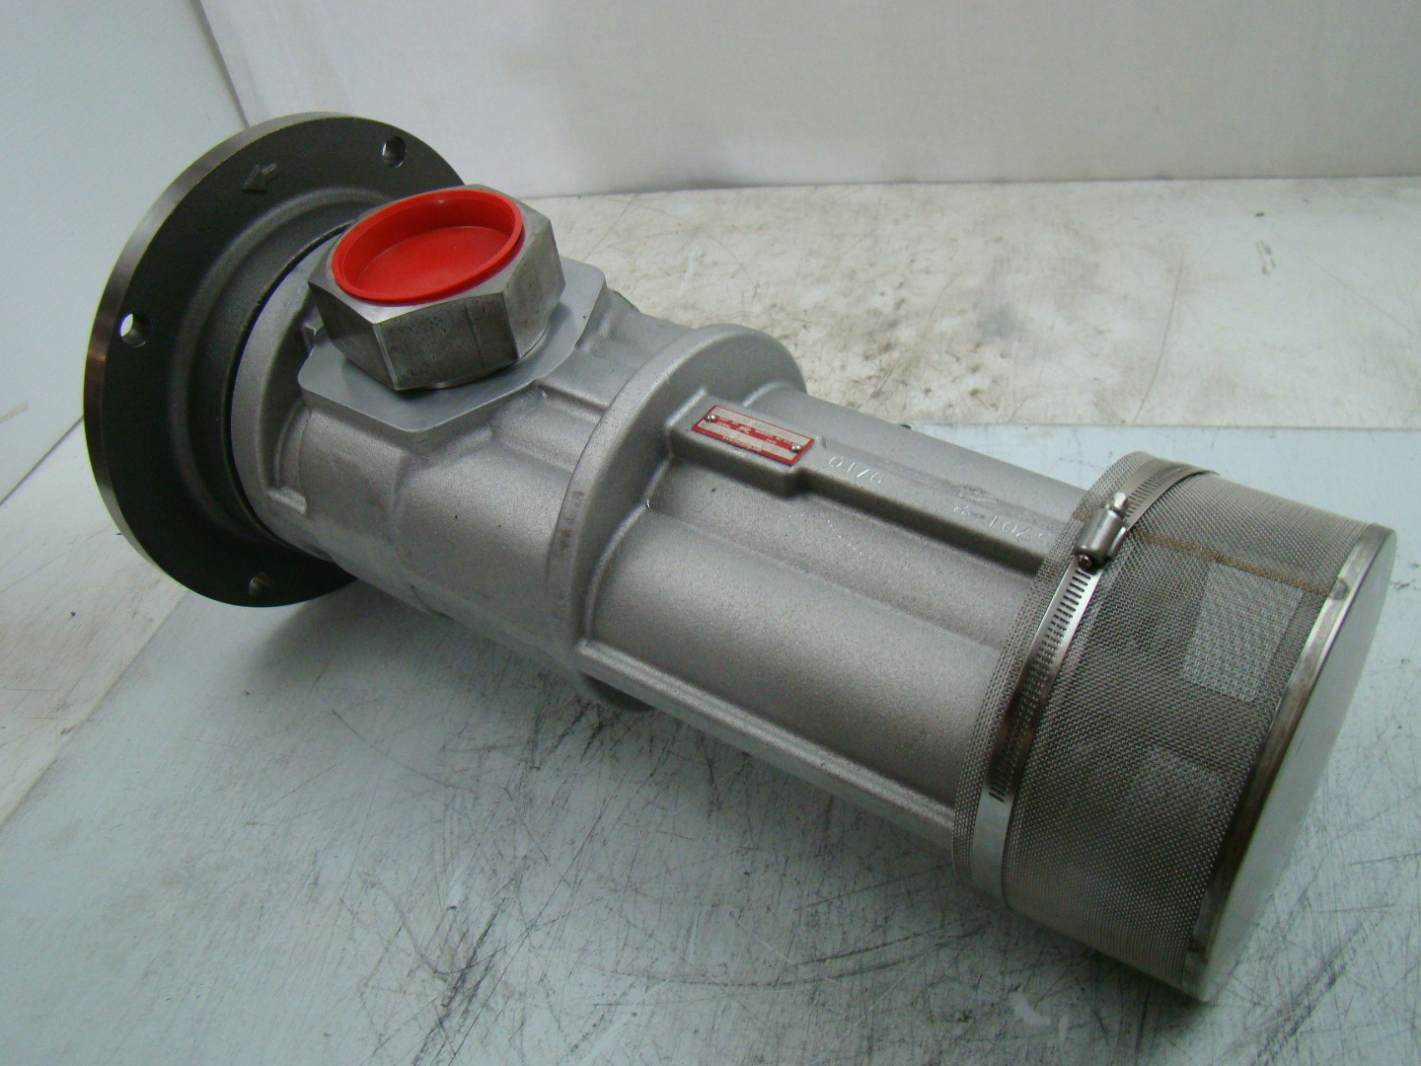 Imo 4pic series submersible hydraulic 3 screw pump a4pic 276 for Submersible hydraulic pump motor